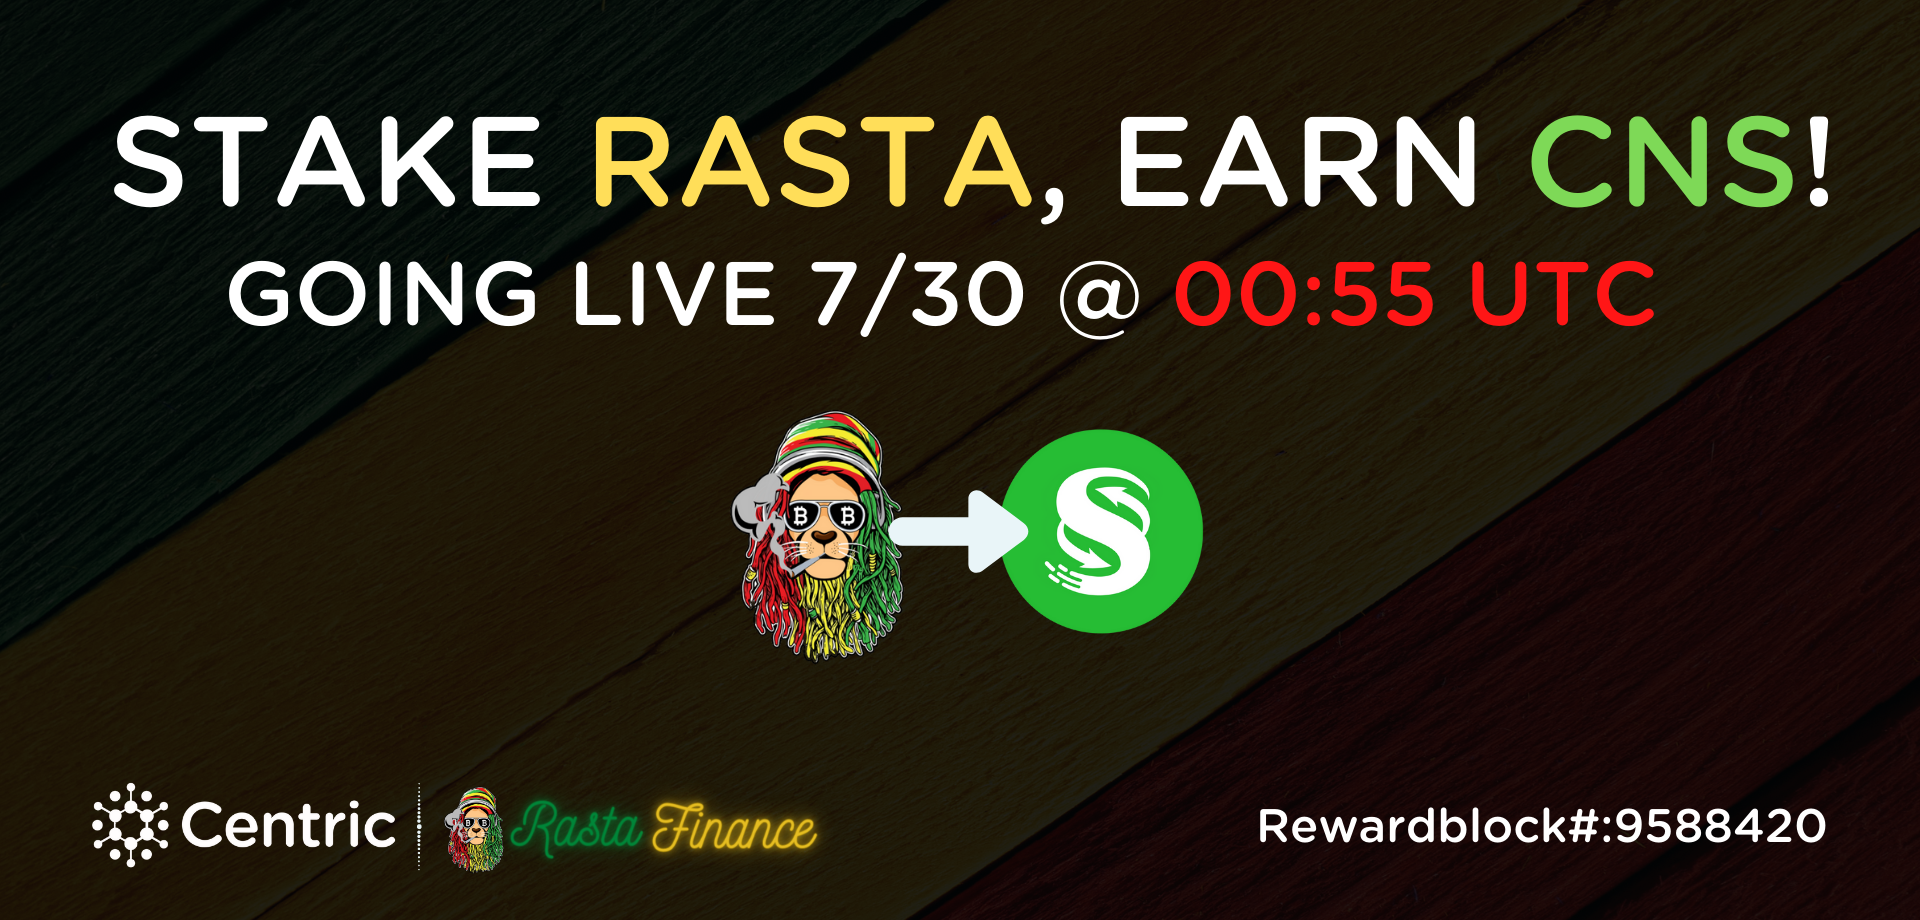 Centric Foundation & RastaFinance Partnership Live - Now Includes Staking to Earn CNS